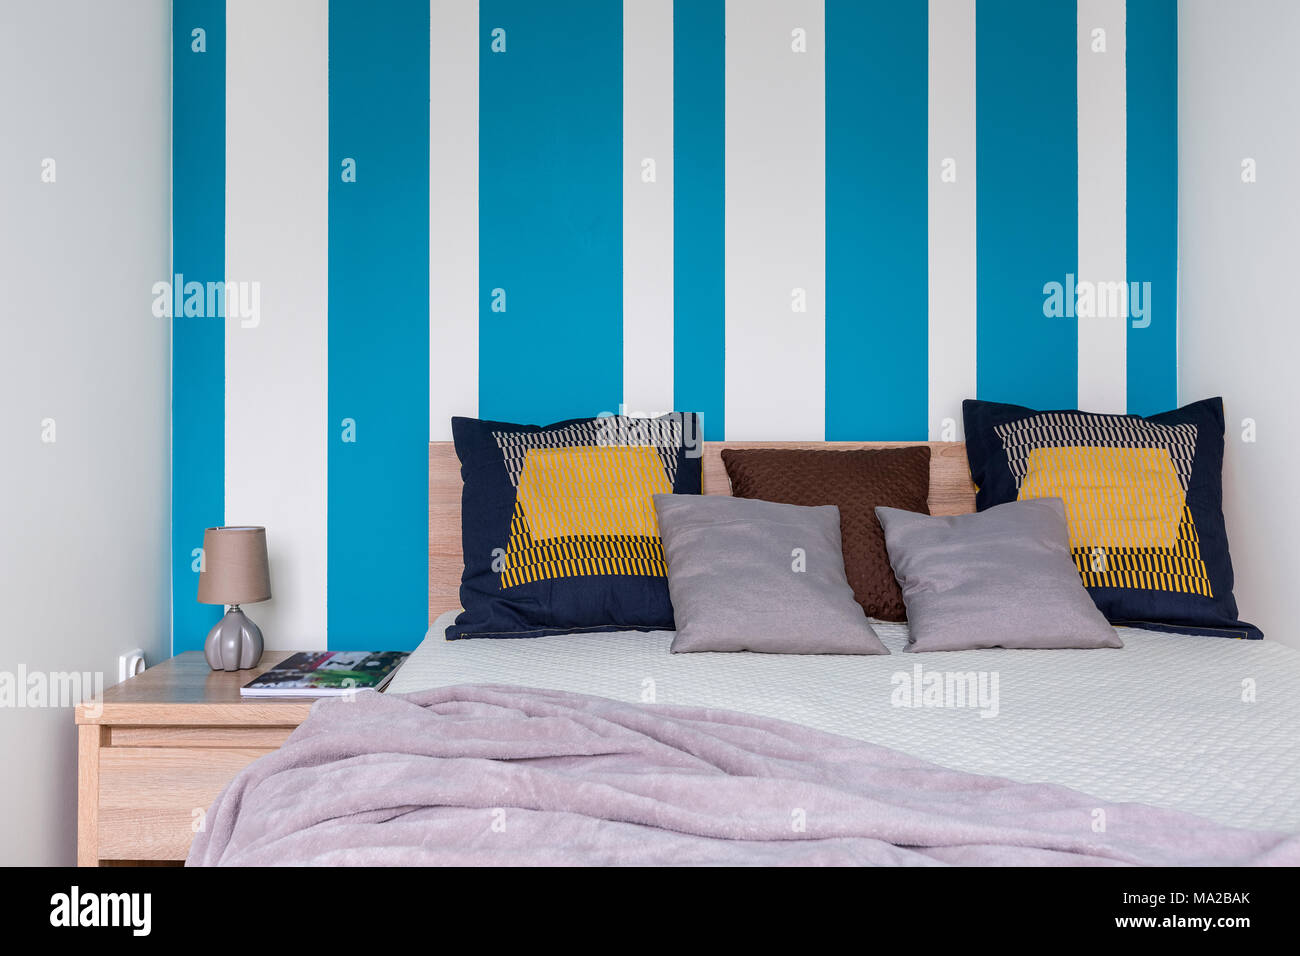 Cozy Bedroom With Big Bed Decorative Cushions And Striped Wall In White And Blue Stock Photo Alamy